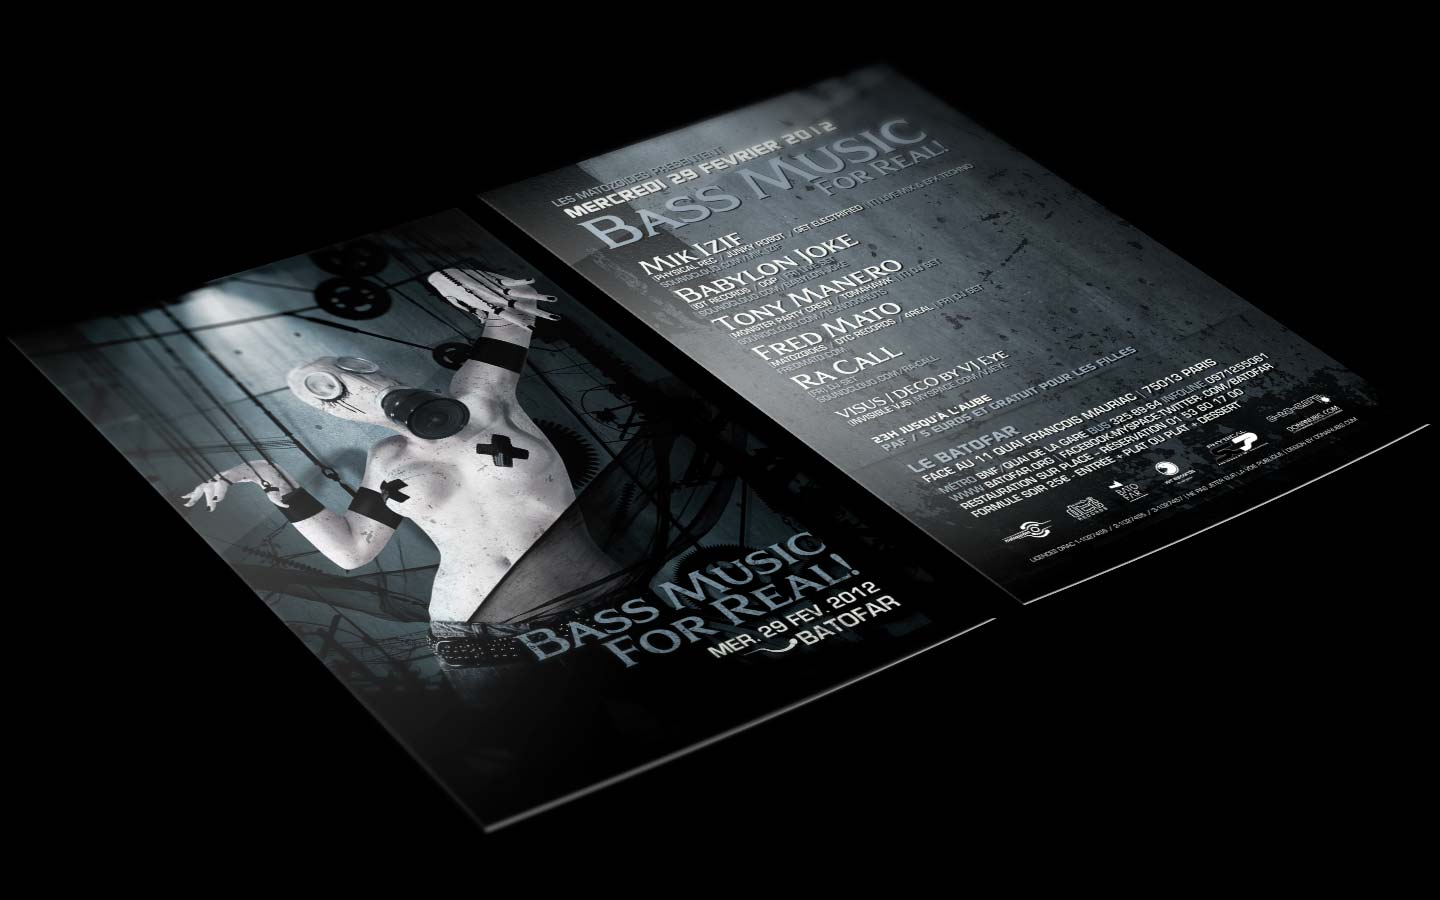 Puppet Master / Bass Music For Real - Laurent Lemoigne - Donanubis - Don Anubis - Digital Art - Graphic Design - Flyer - Matozoides - Batofar - Paris - Art - Music - Electronic - Party - Event - Flyer - Poster - Industrial - Dark - Gazmask - Gas Mask - Fetish - Puppet - Nipple Tassles - Woman - Beautiful - Wheel - Cogwheel - Factory - Alternative - Underground - Geneva - Switzerland - Drum and Bass - d'n'b - Hard Drum - Techno - Mik Izif / Physical Rec / Junky Robot / Get Electrified - Babylon Joke / IOT Records / OQP - Tony Manero / Monster Party Crew / Tomahawk - Fred Mato / Matozoides / DTC Records / 4real - Ra Call - Metal - Hard - Rock - Death - Band - Illustration